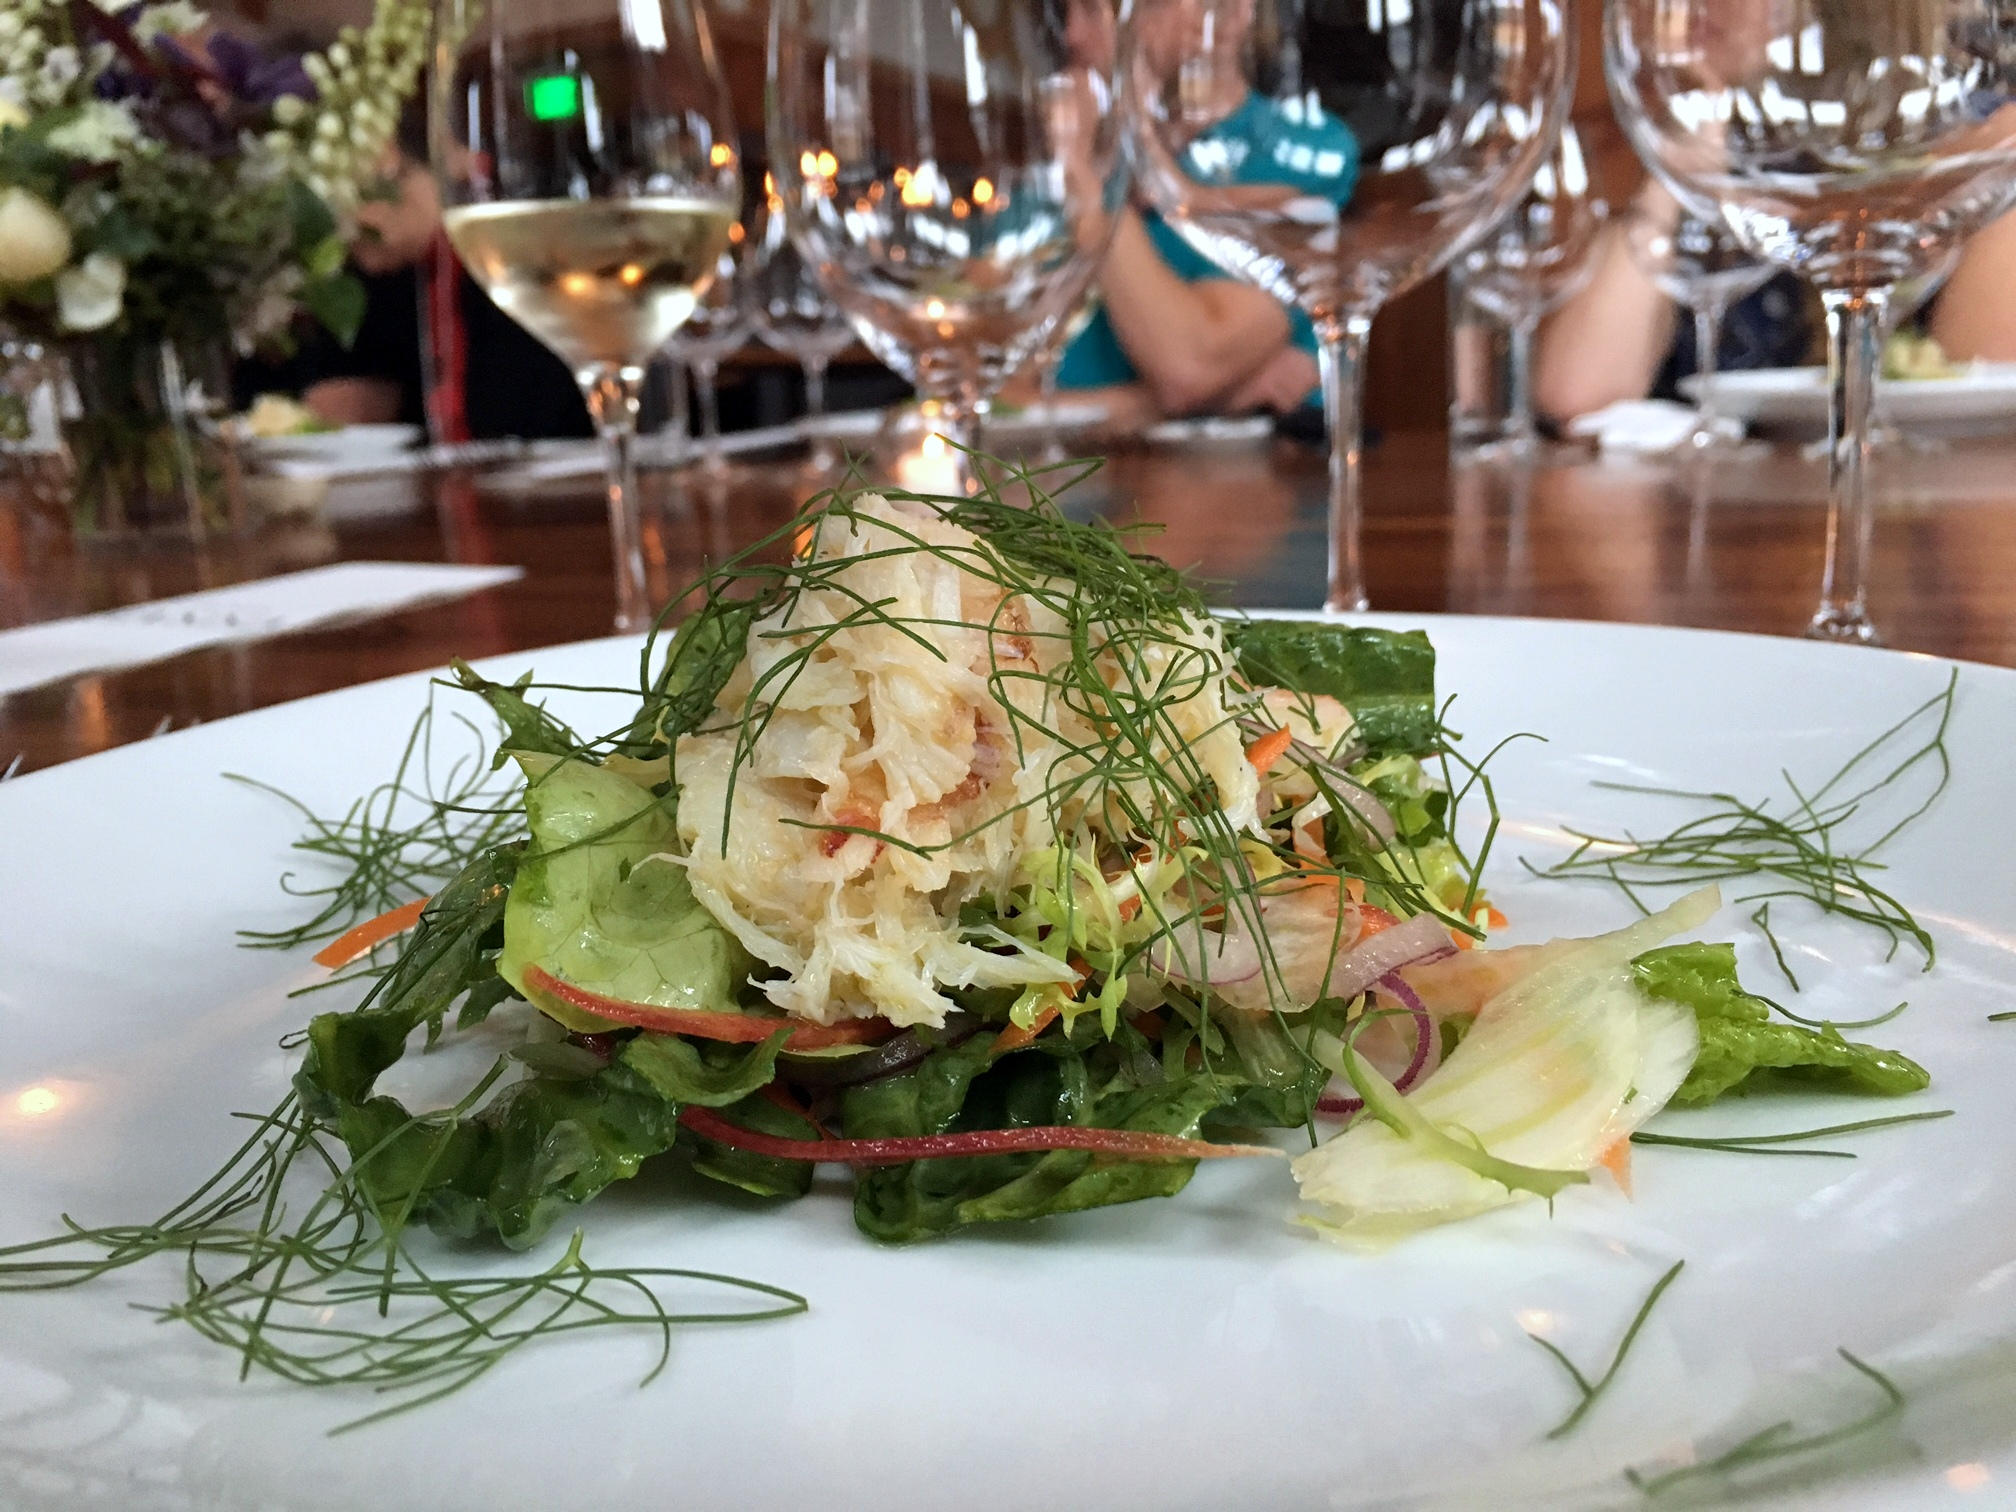 Dungeness crab and Fennel Salad